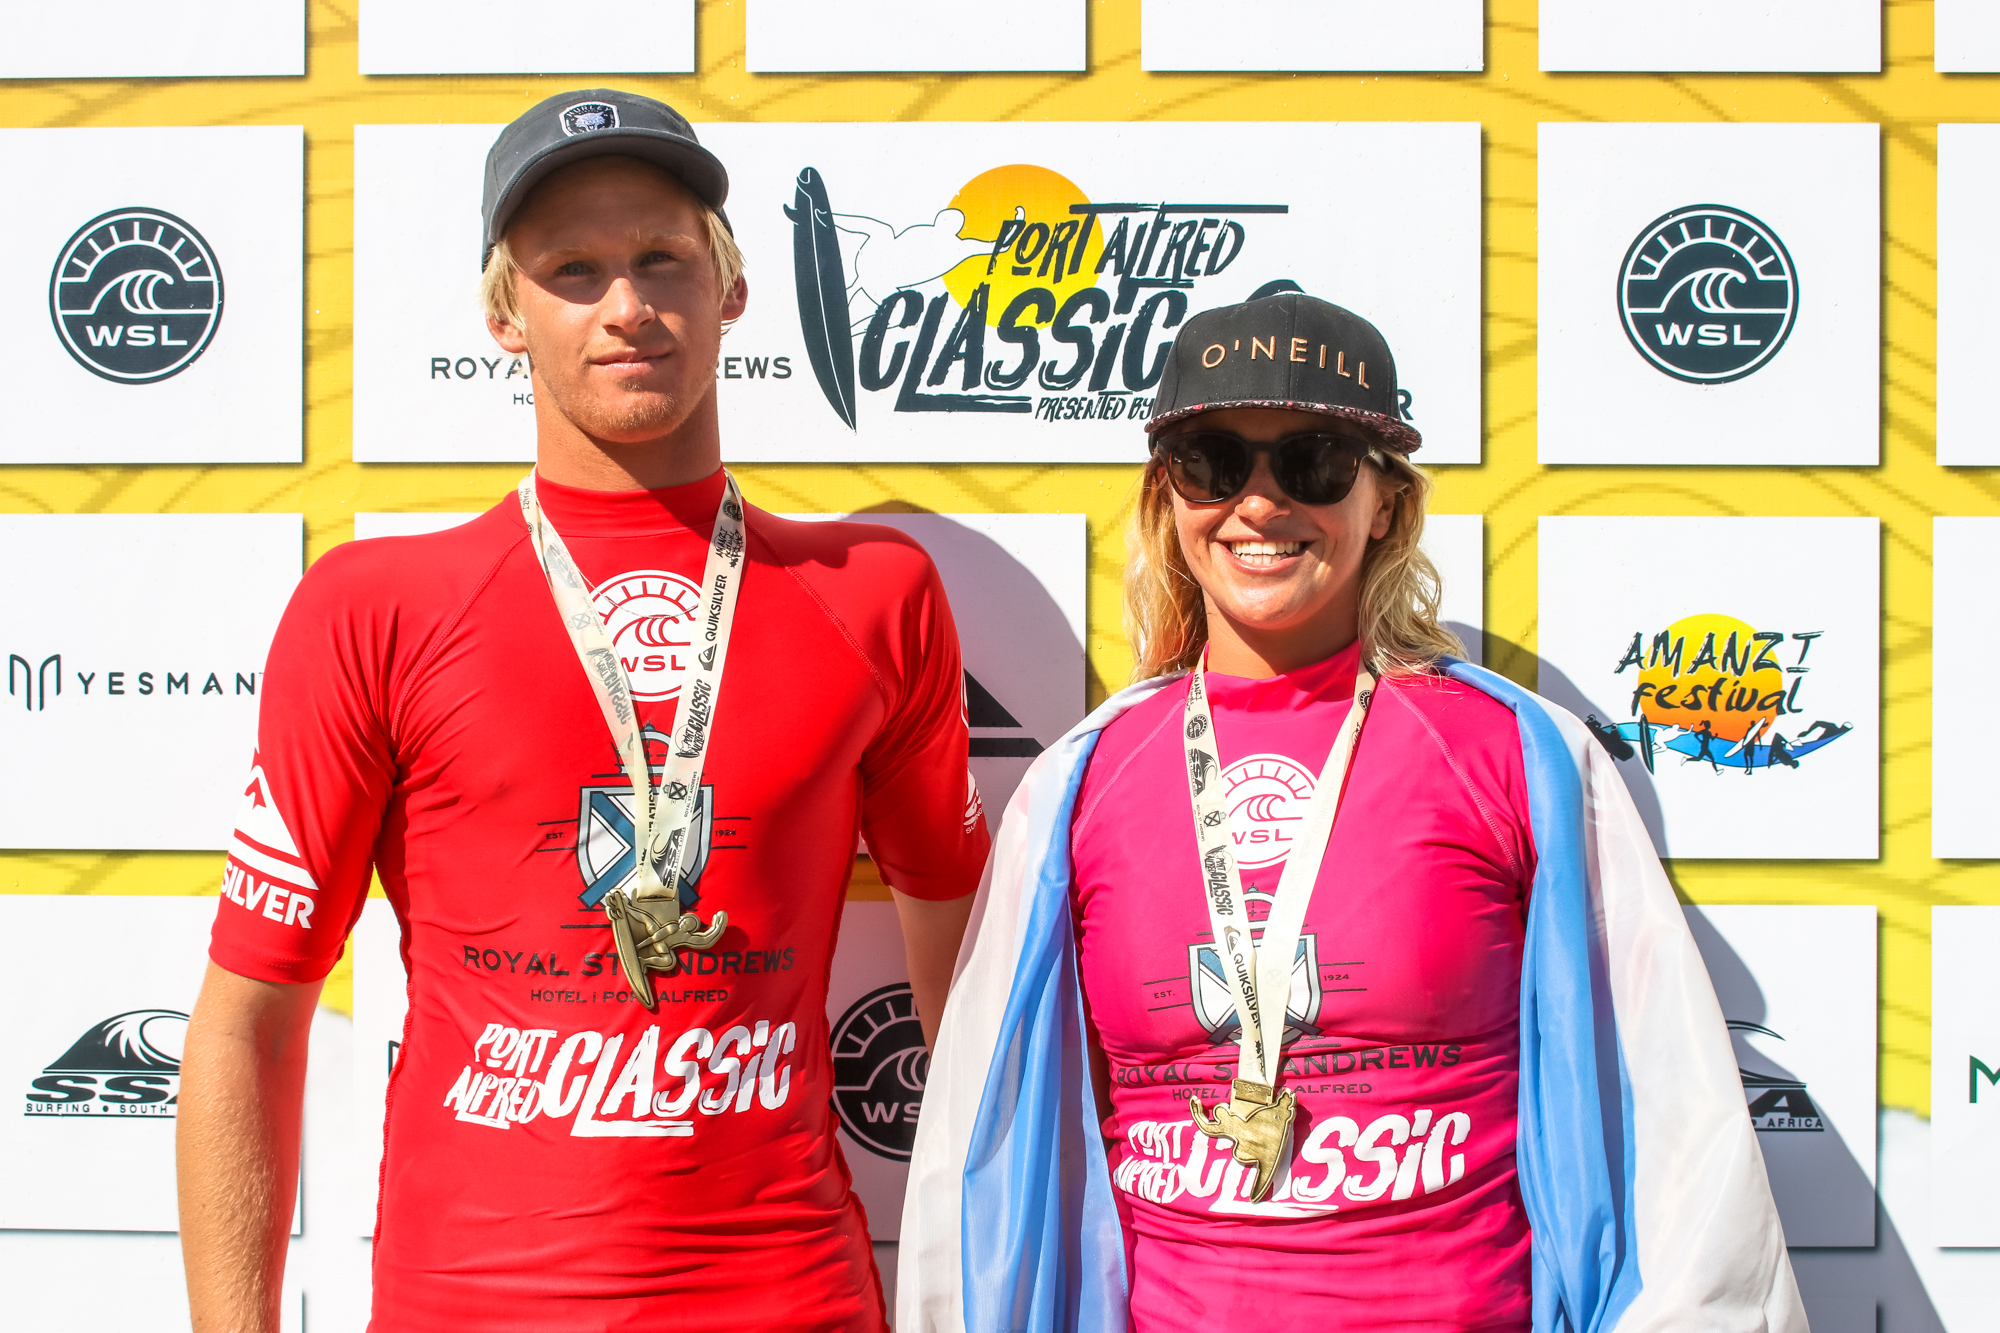 WSL Mens and Womens Winners